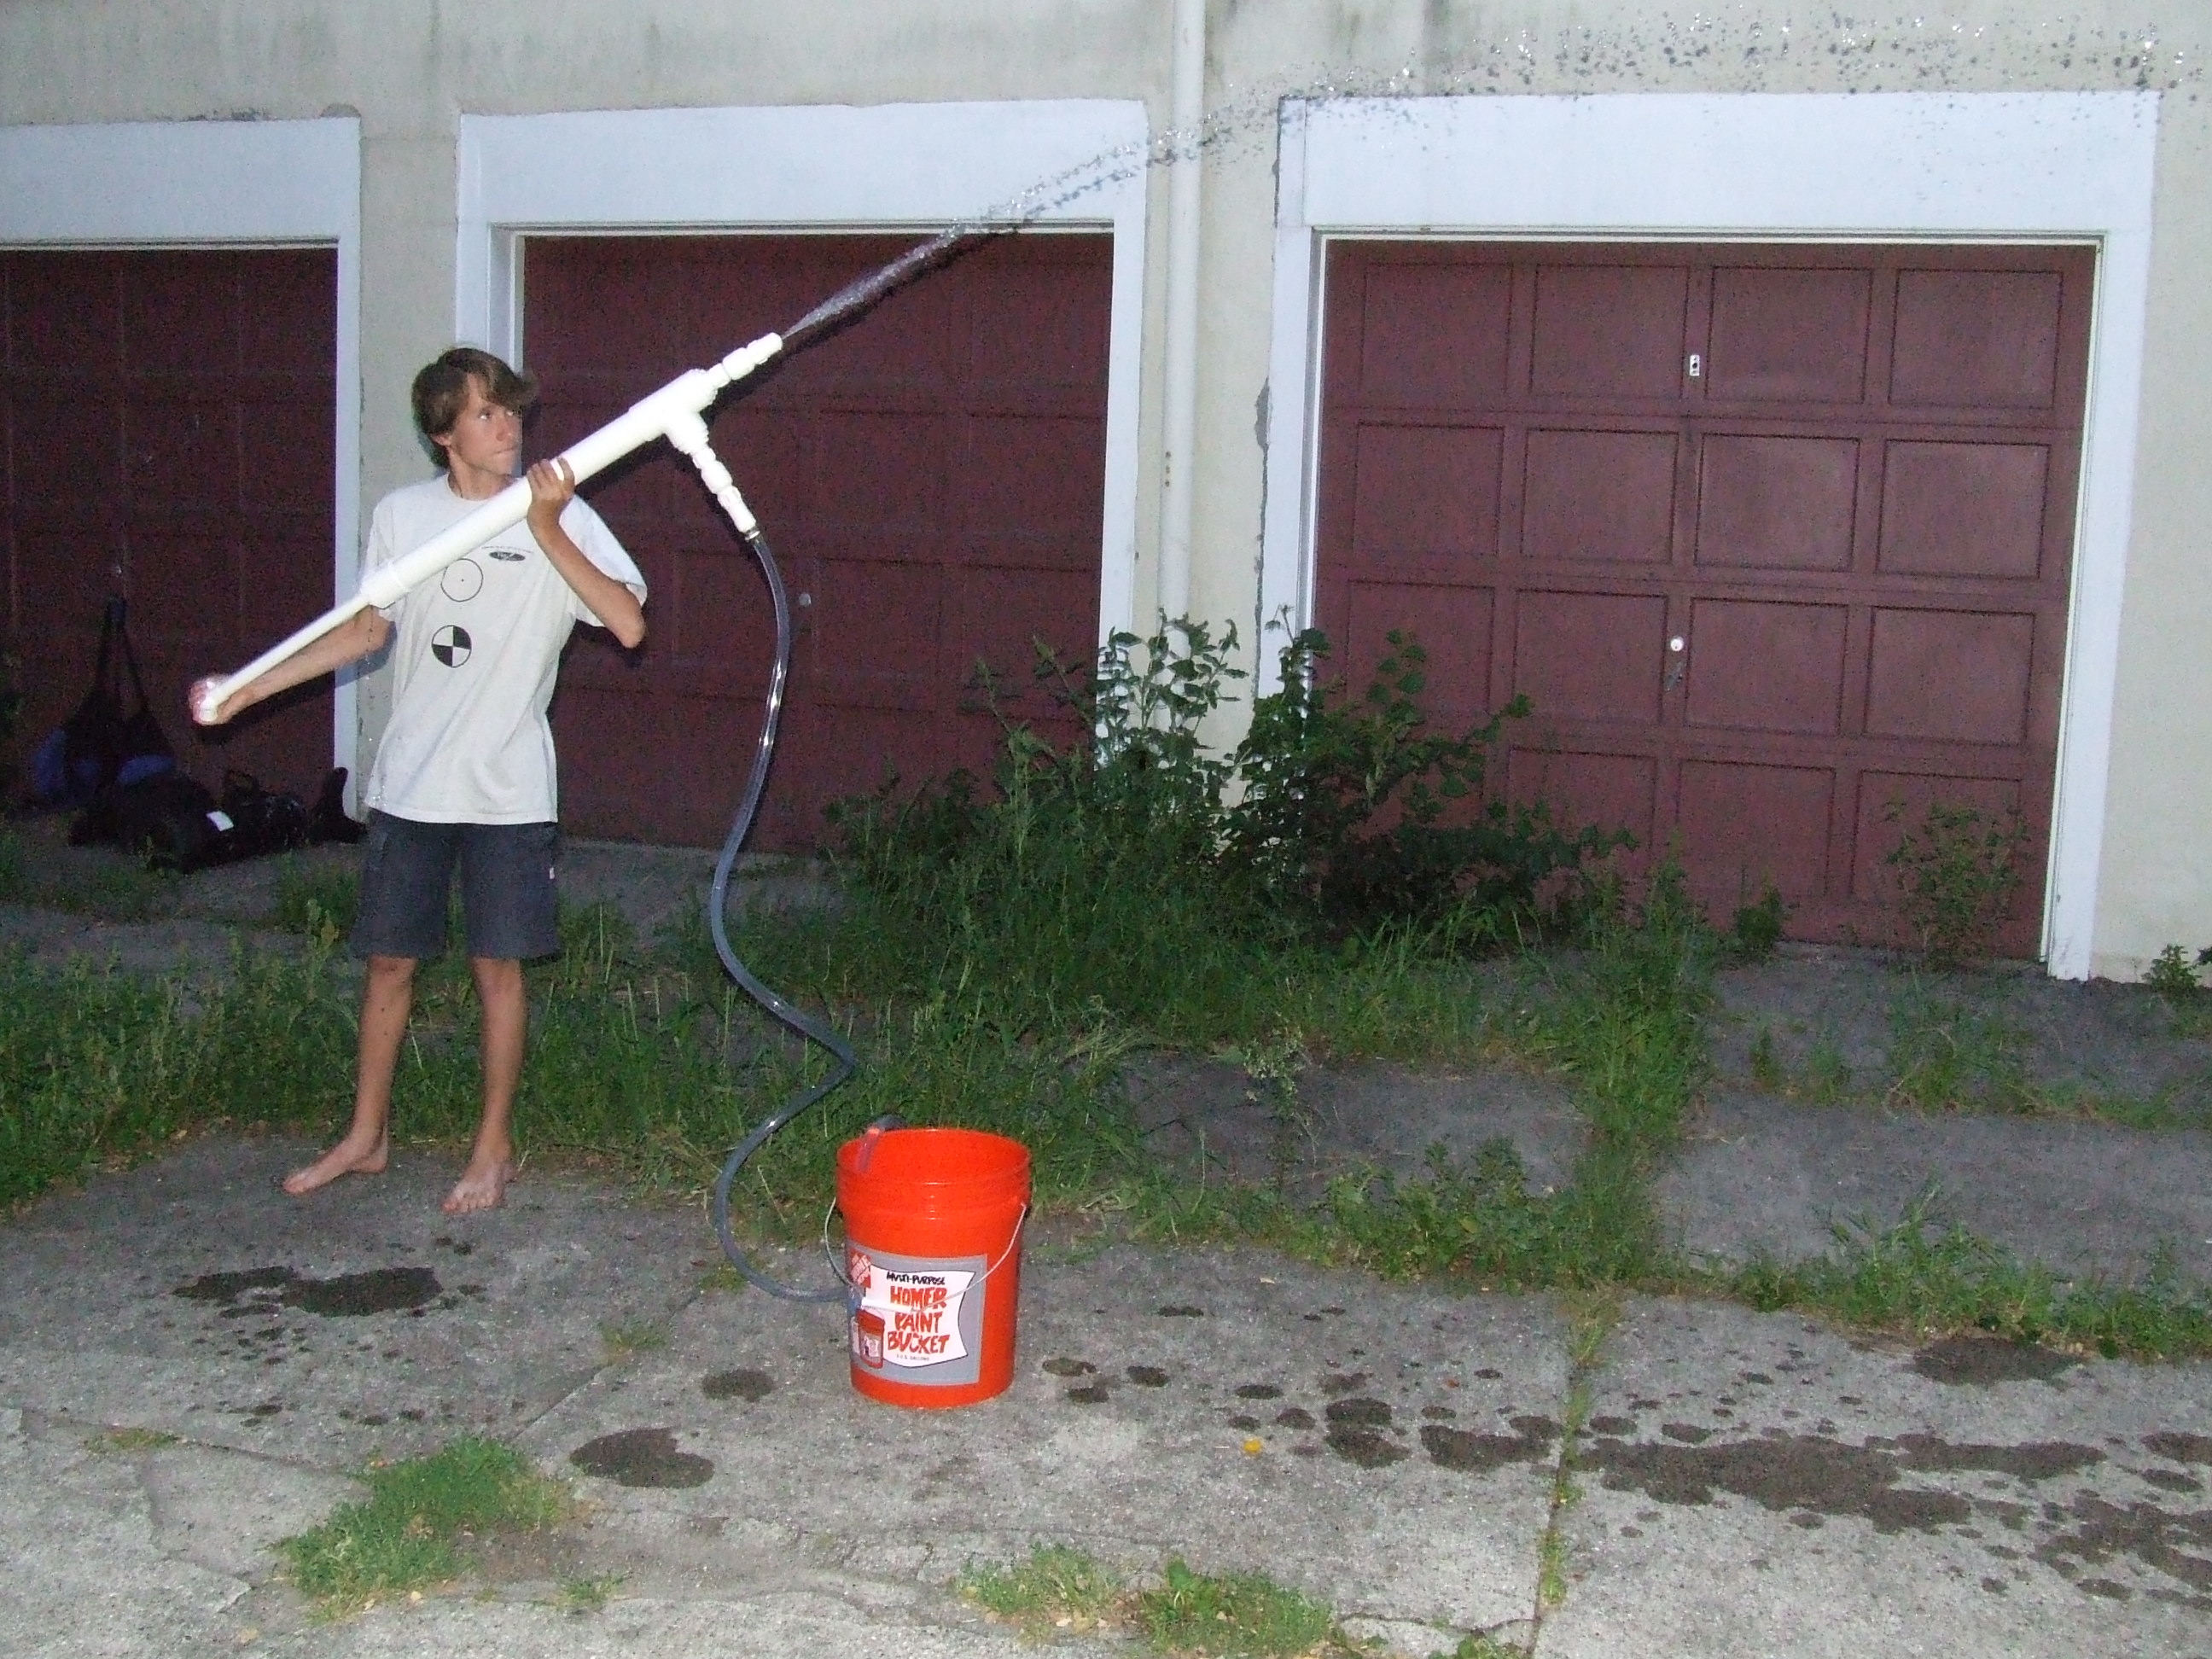 Picture of The Ol' Squirter: a Rather Large Water Gun